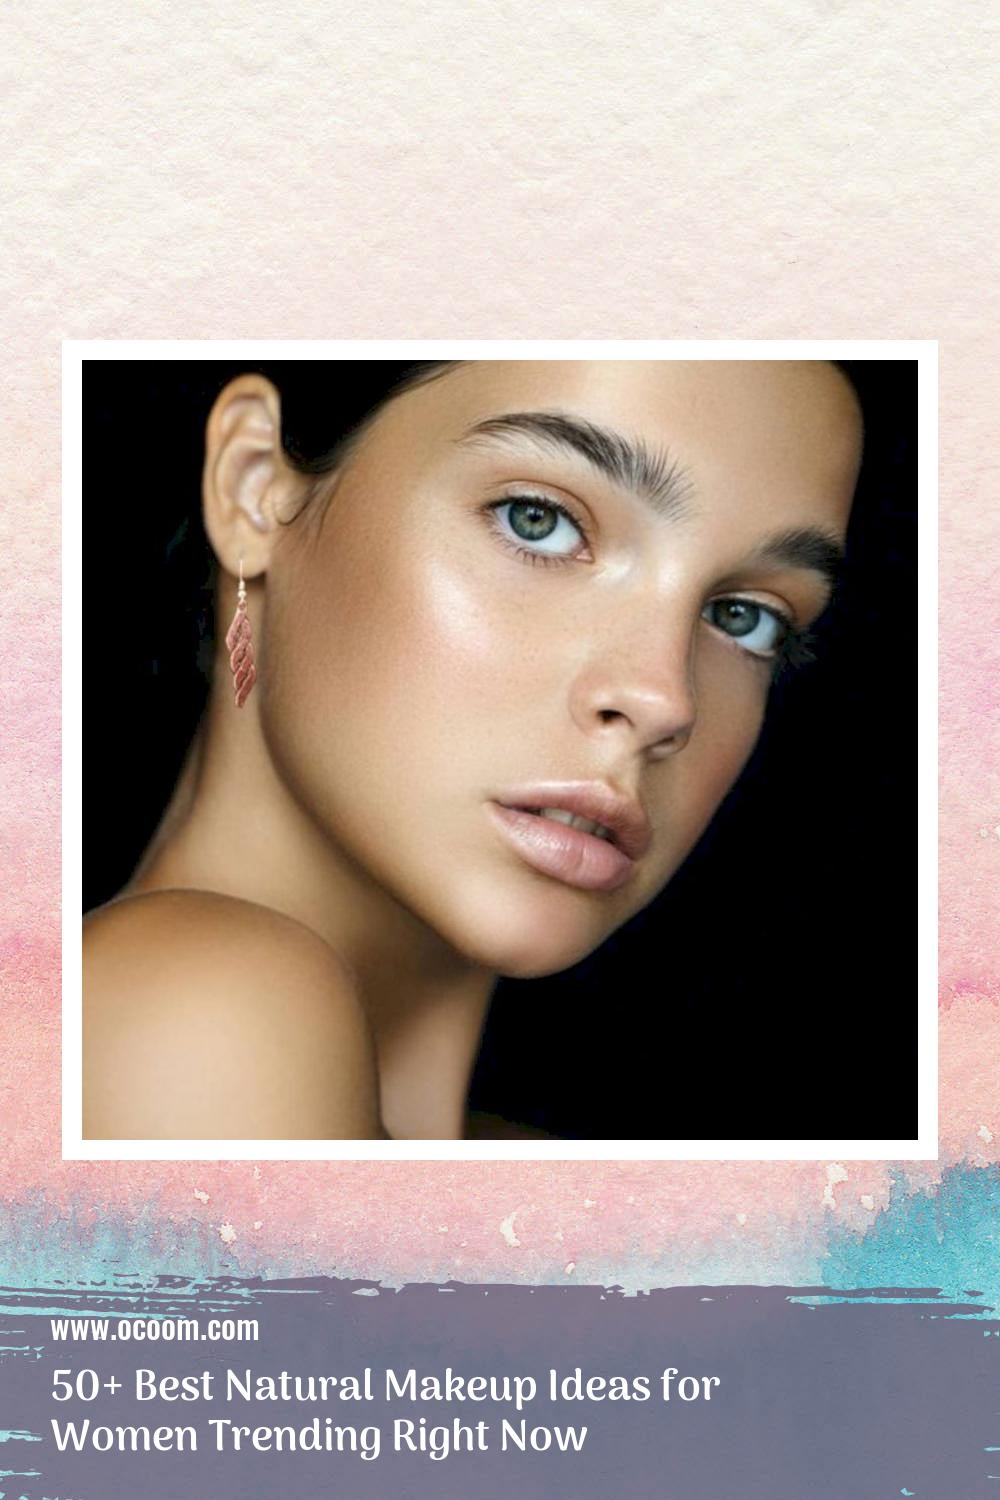 50+ Best Natural Makeup Ideas for Women Trending Right Now 22